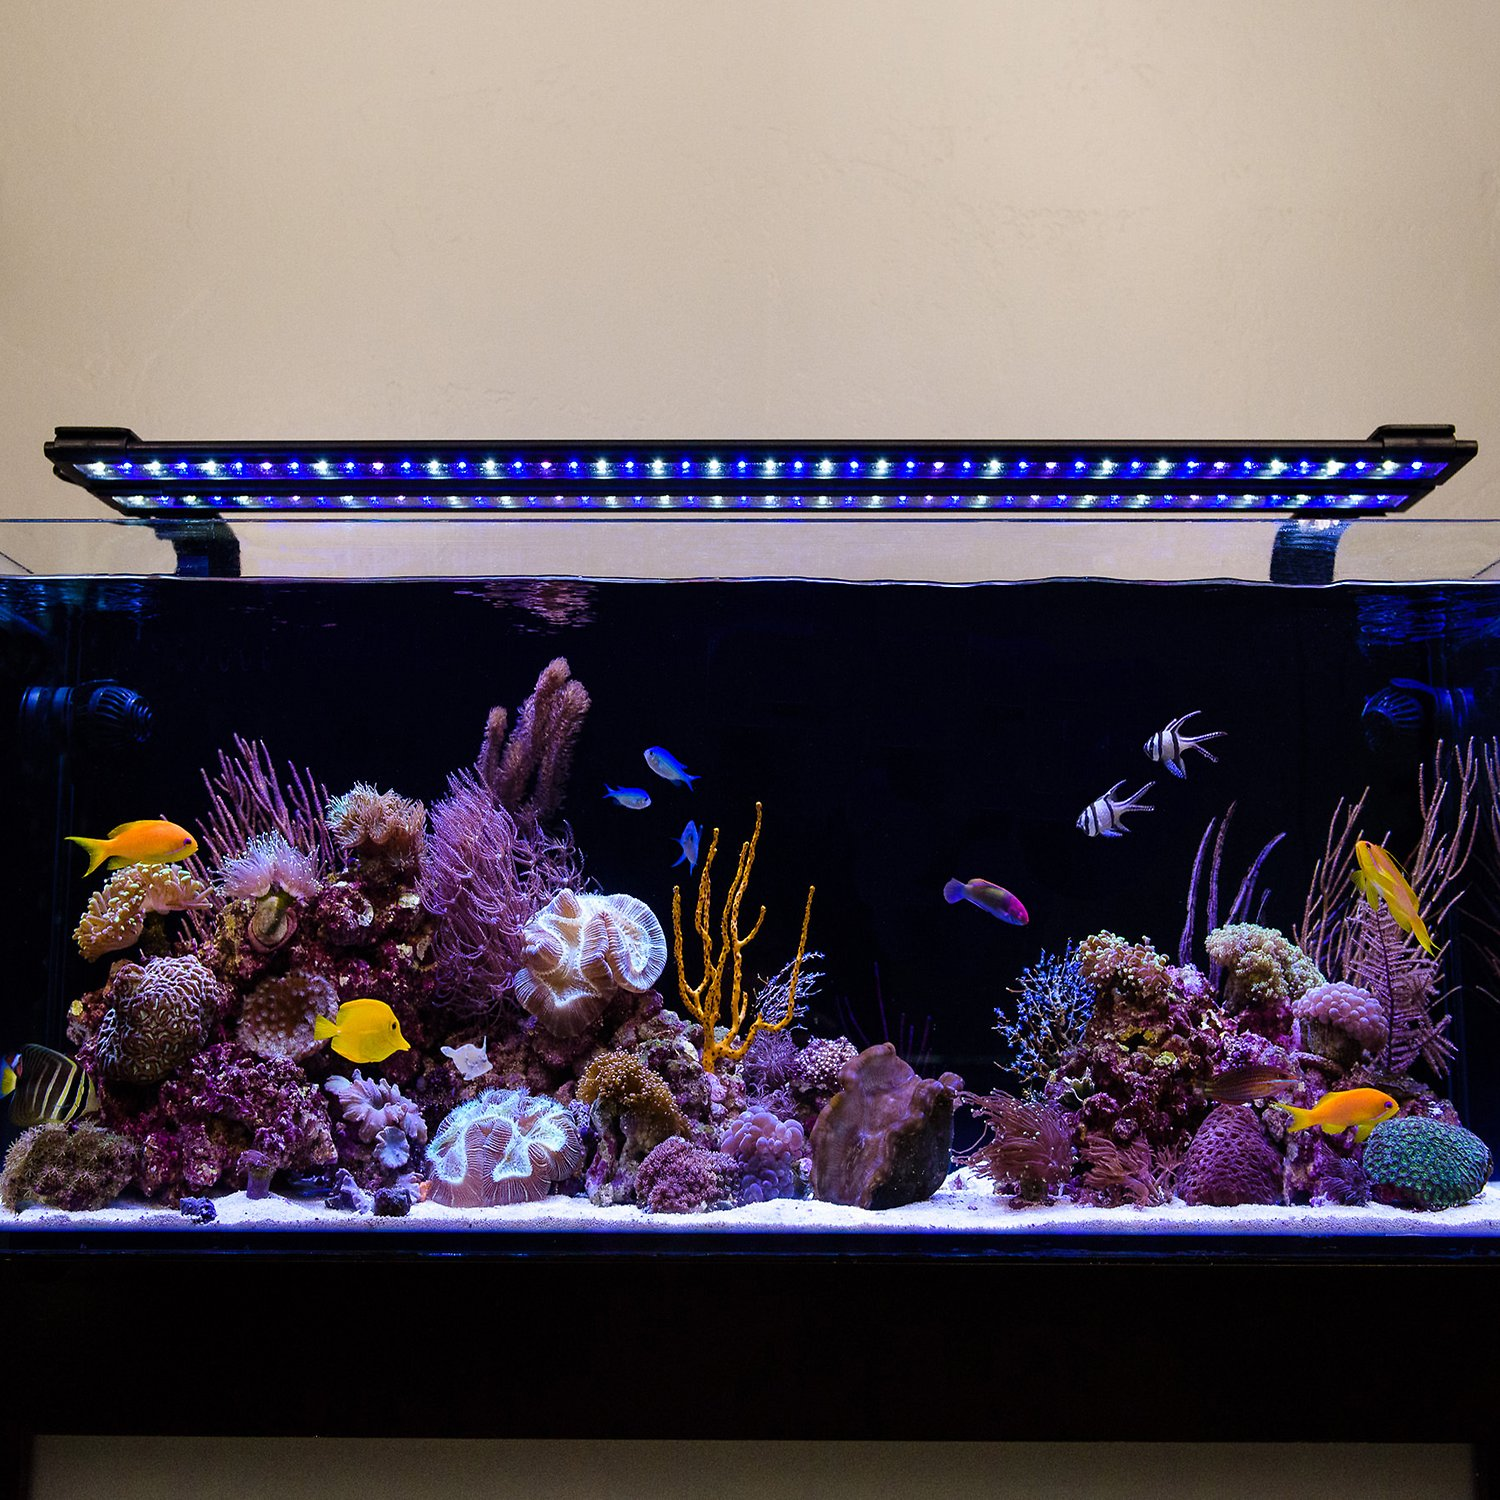 maintaining marine reef aquarium essay Thanks for joining if you haven't done so already, please visit and like our facebook page at redsealtd  also, check out our red sea max/reefer owners facebook group and join the discussion in our community of 20,000+ home reef owners like you.